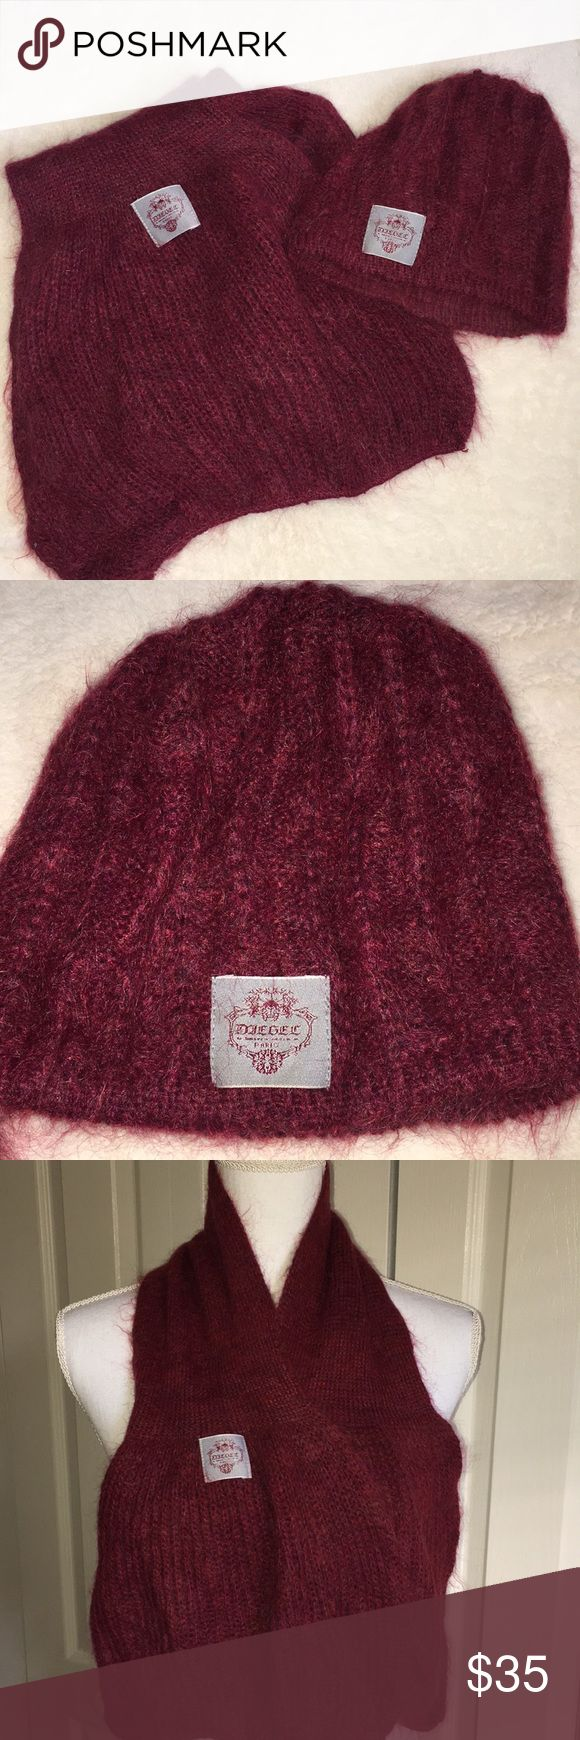 Diesel Mohair Scarf and Hat Set Gorgeous Diesel set a scarf and matching hat in a beautiful deep red with hints of purple in it. Never worn- stored and moved to a warm climate. Any questions are welcome ! Diesel Accessories Scarves & Wraps